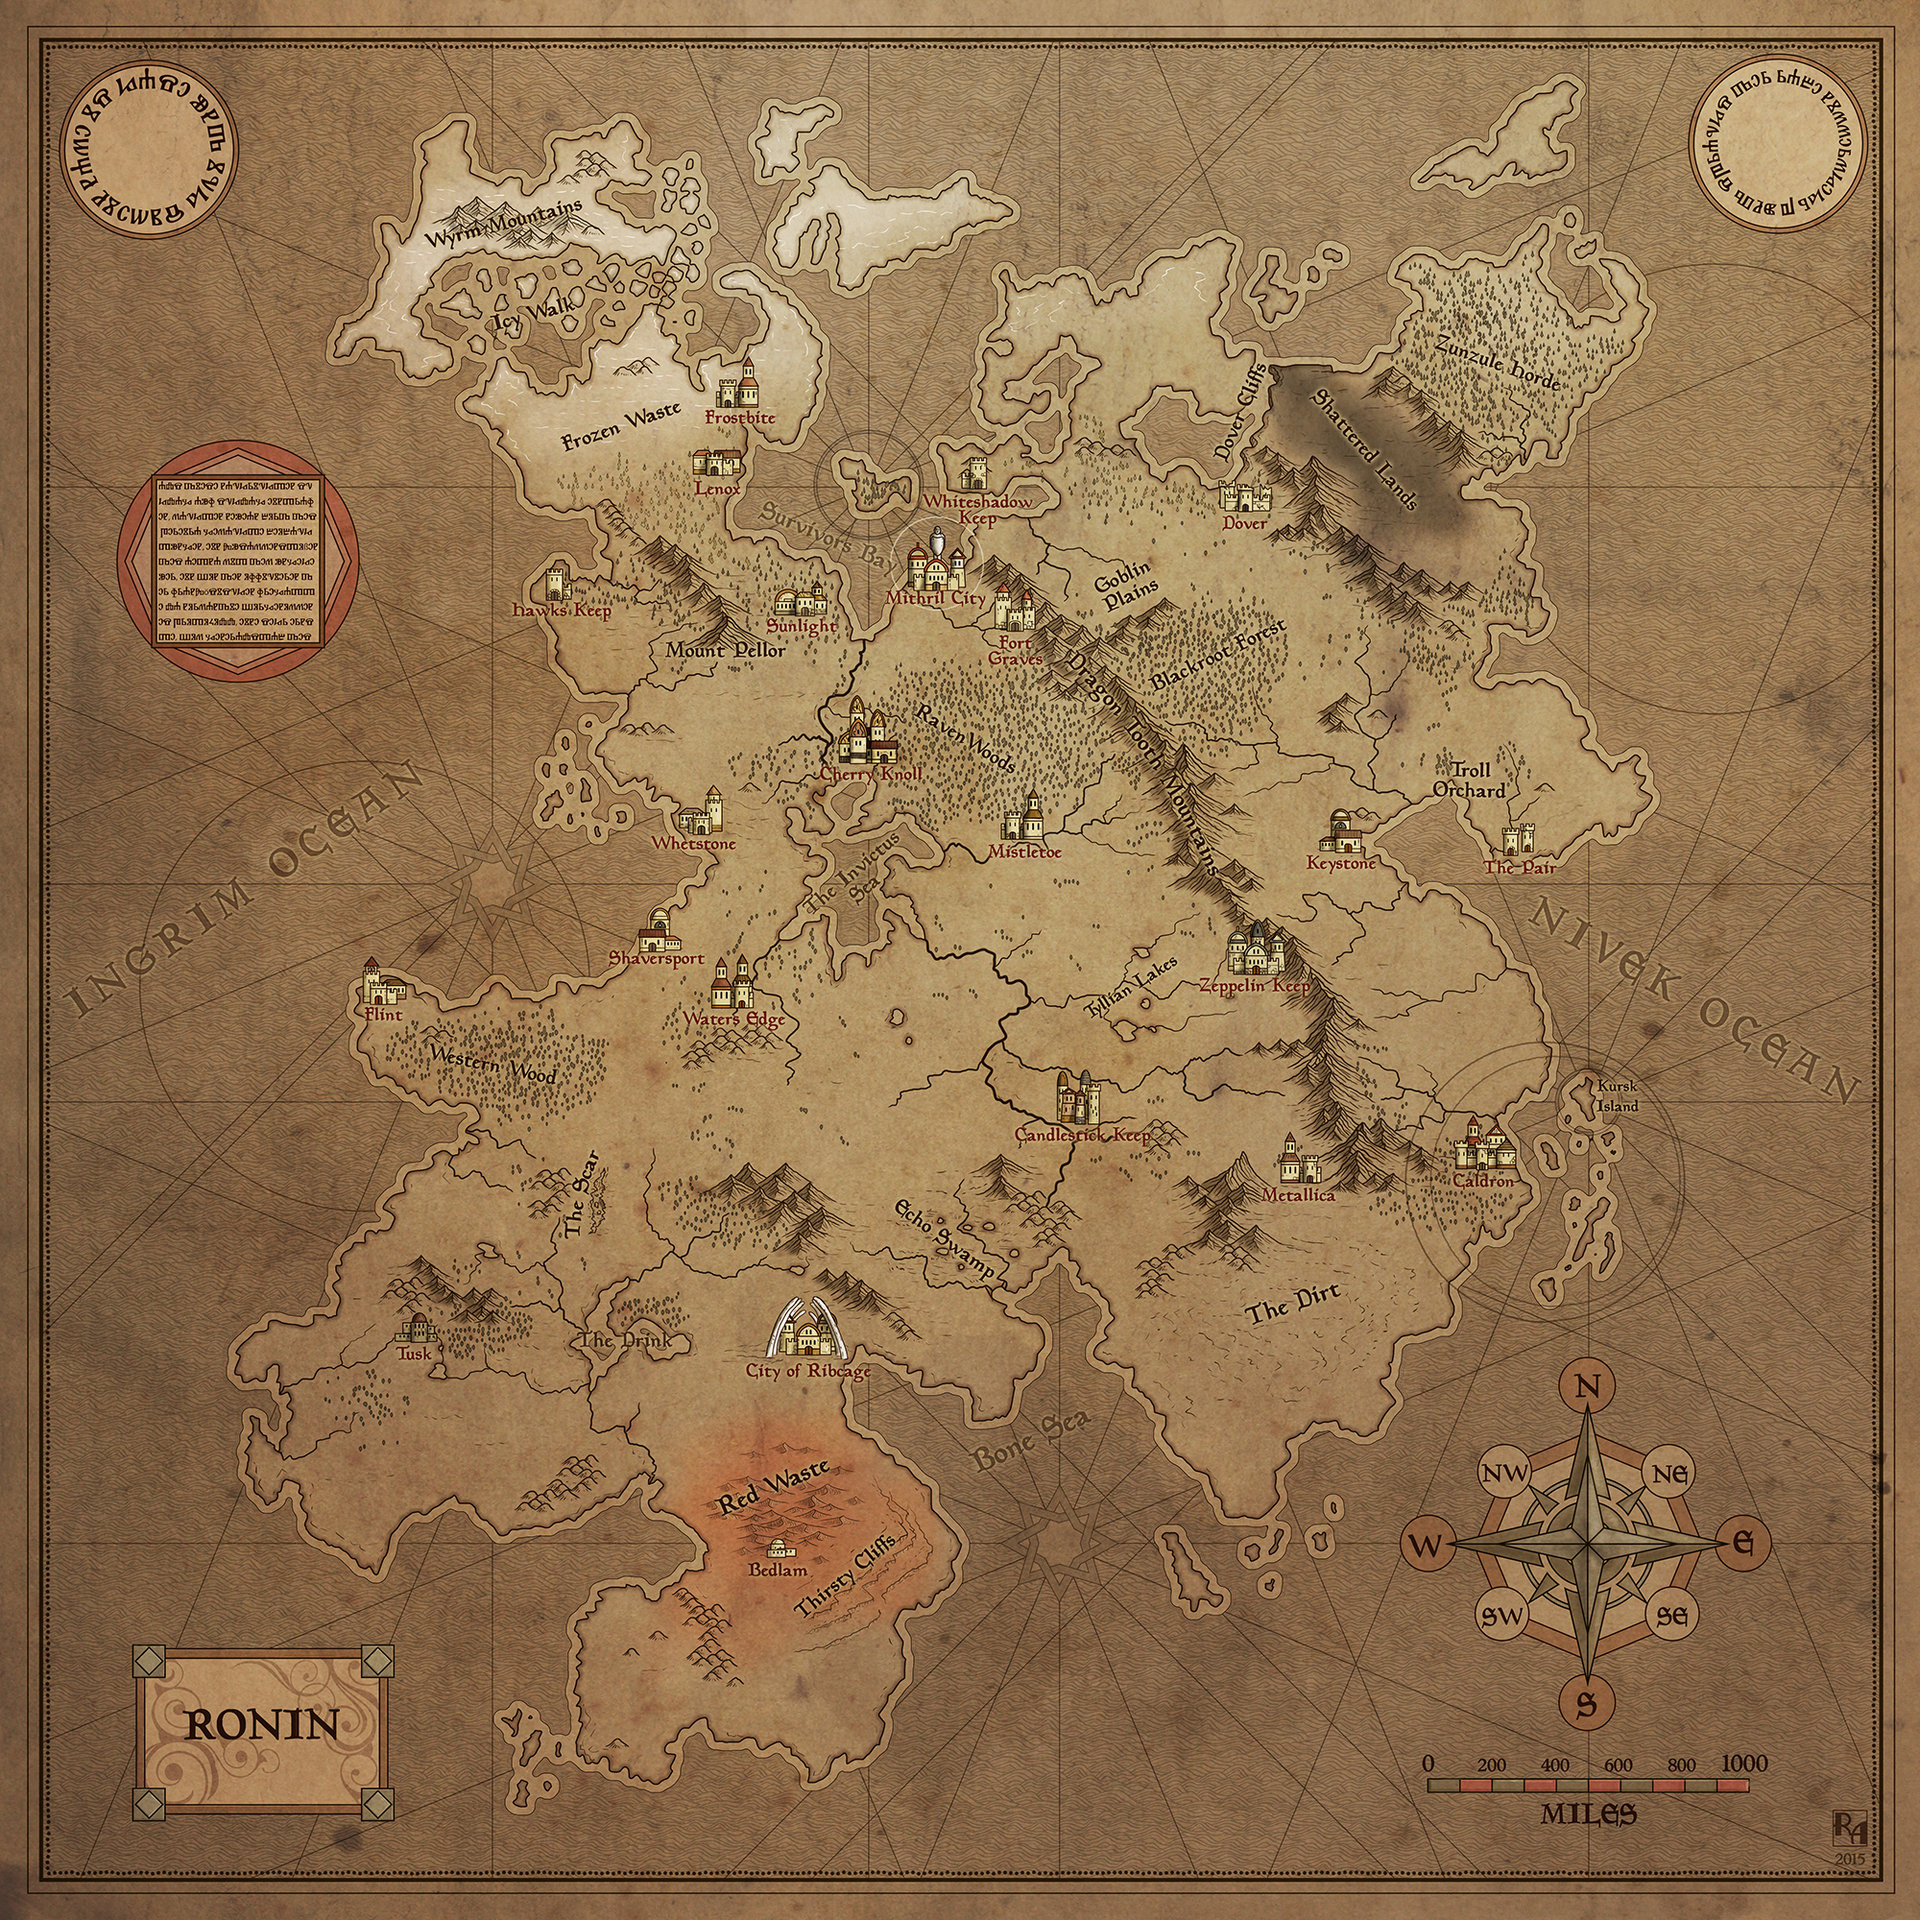 Robert altbauer map of ronin